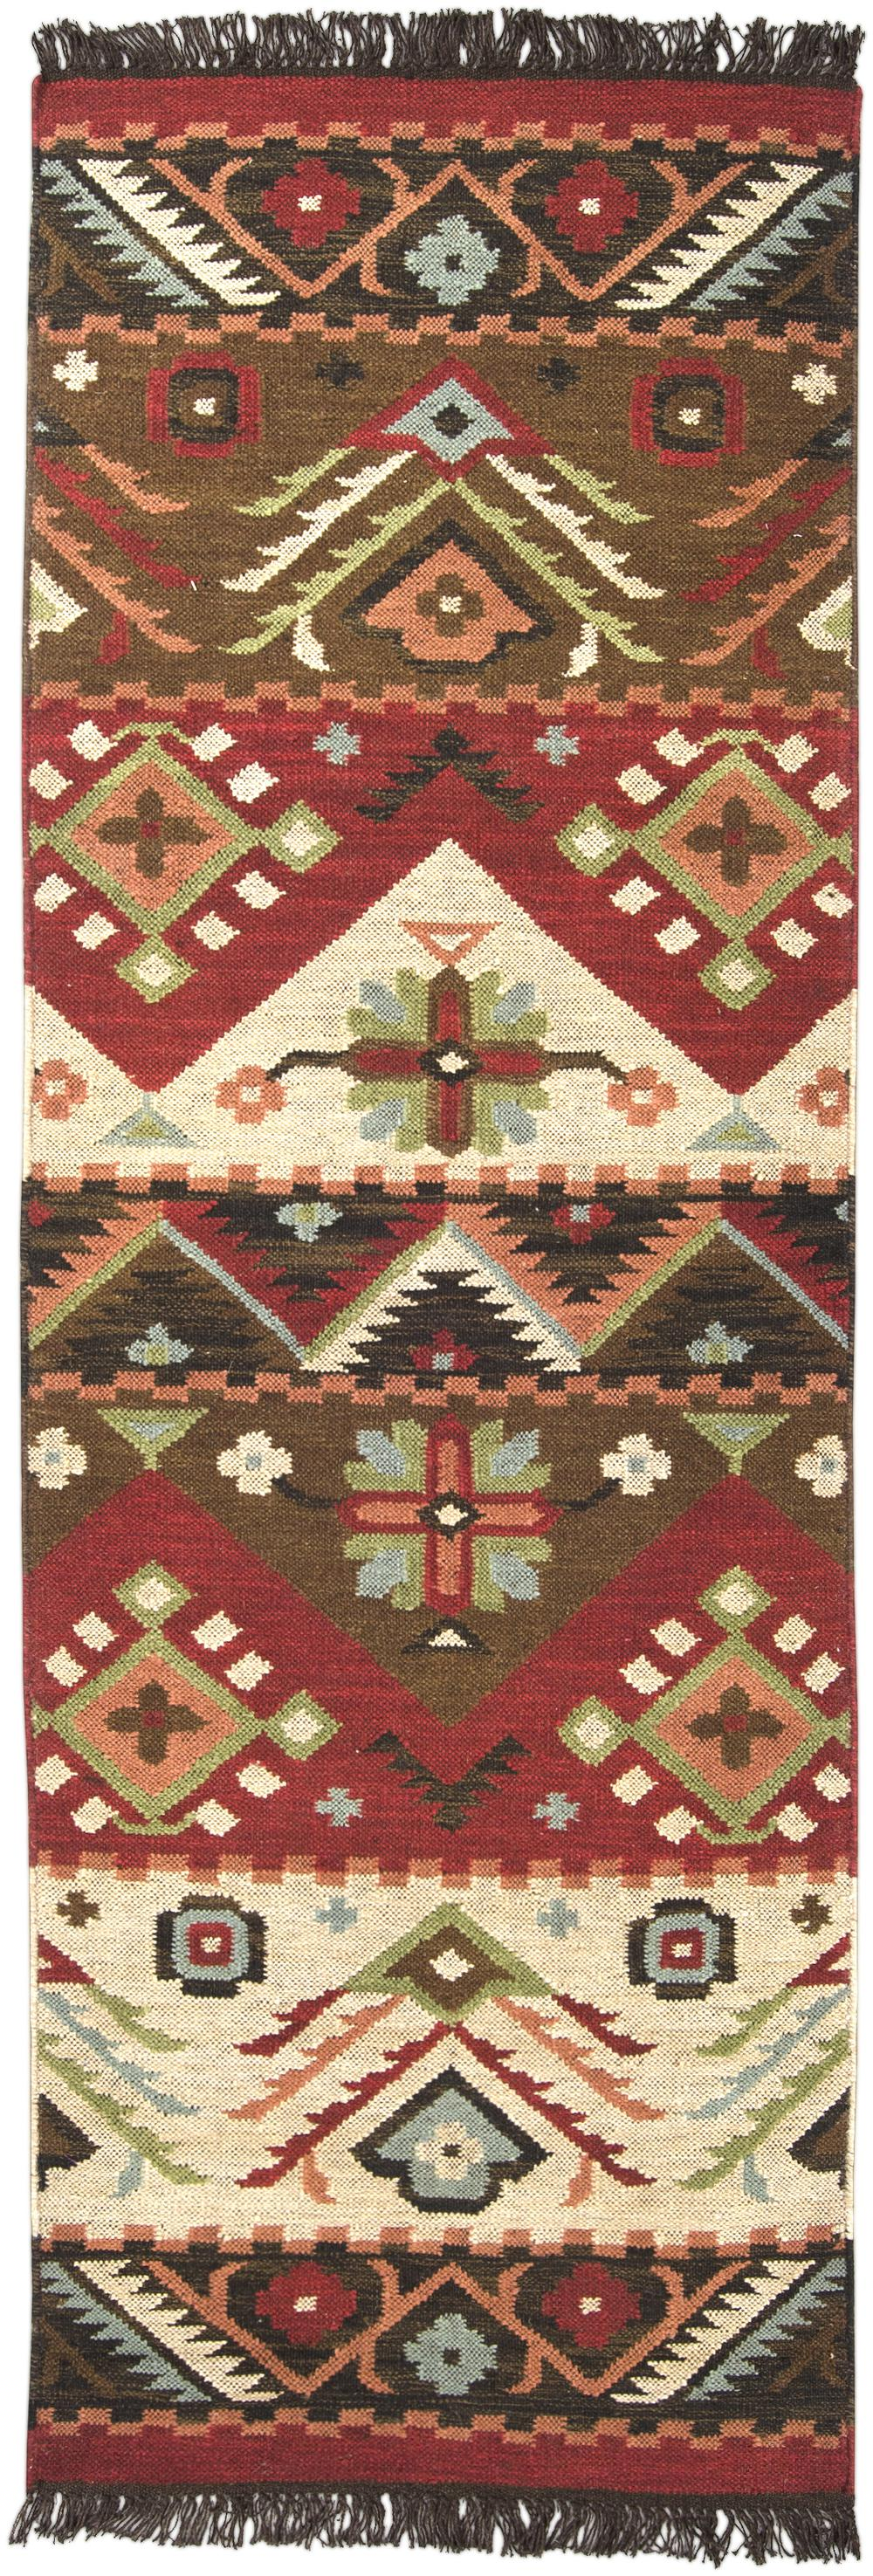 Surya Jewel Tone Jt8 Brown Area Rug Free Shipping